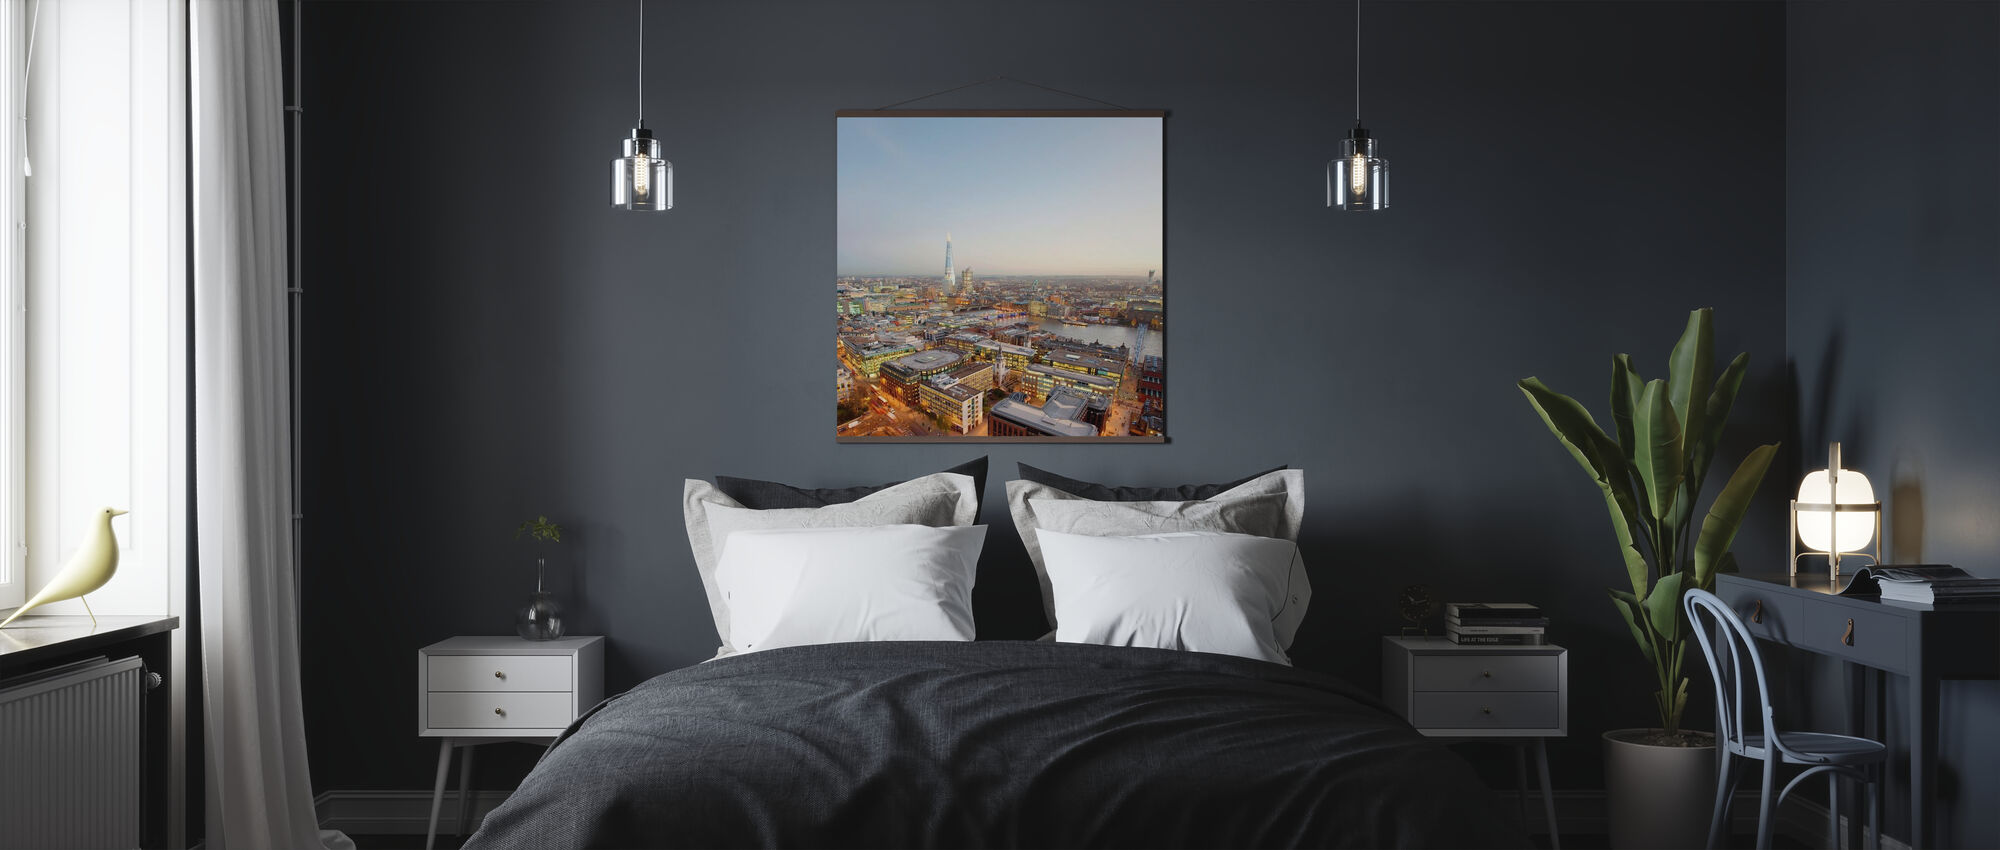 London and the Shard - Poster - Bedroom